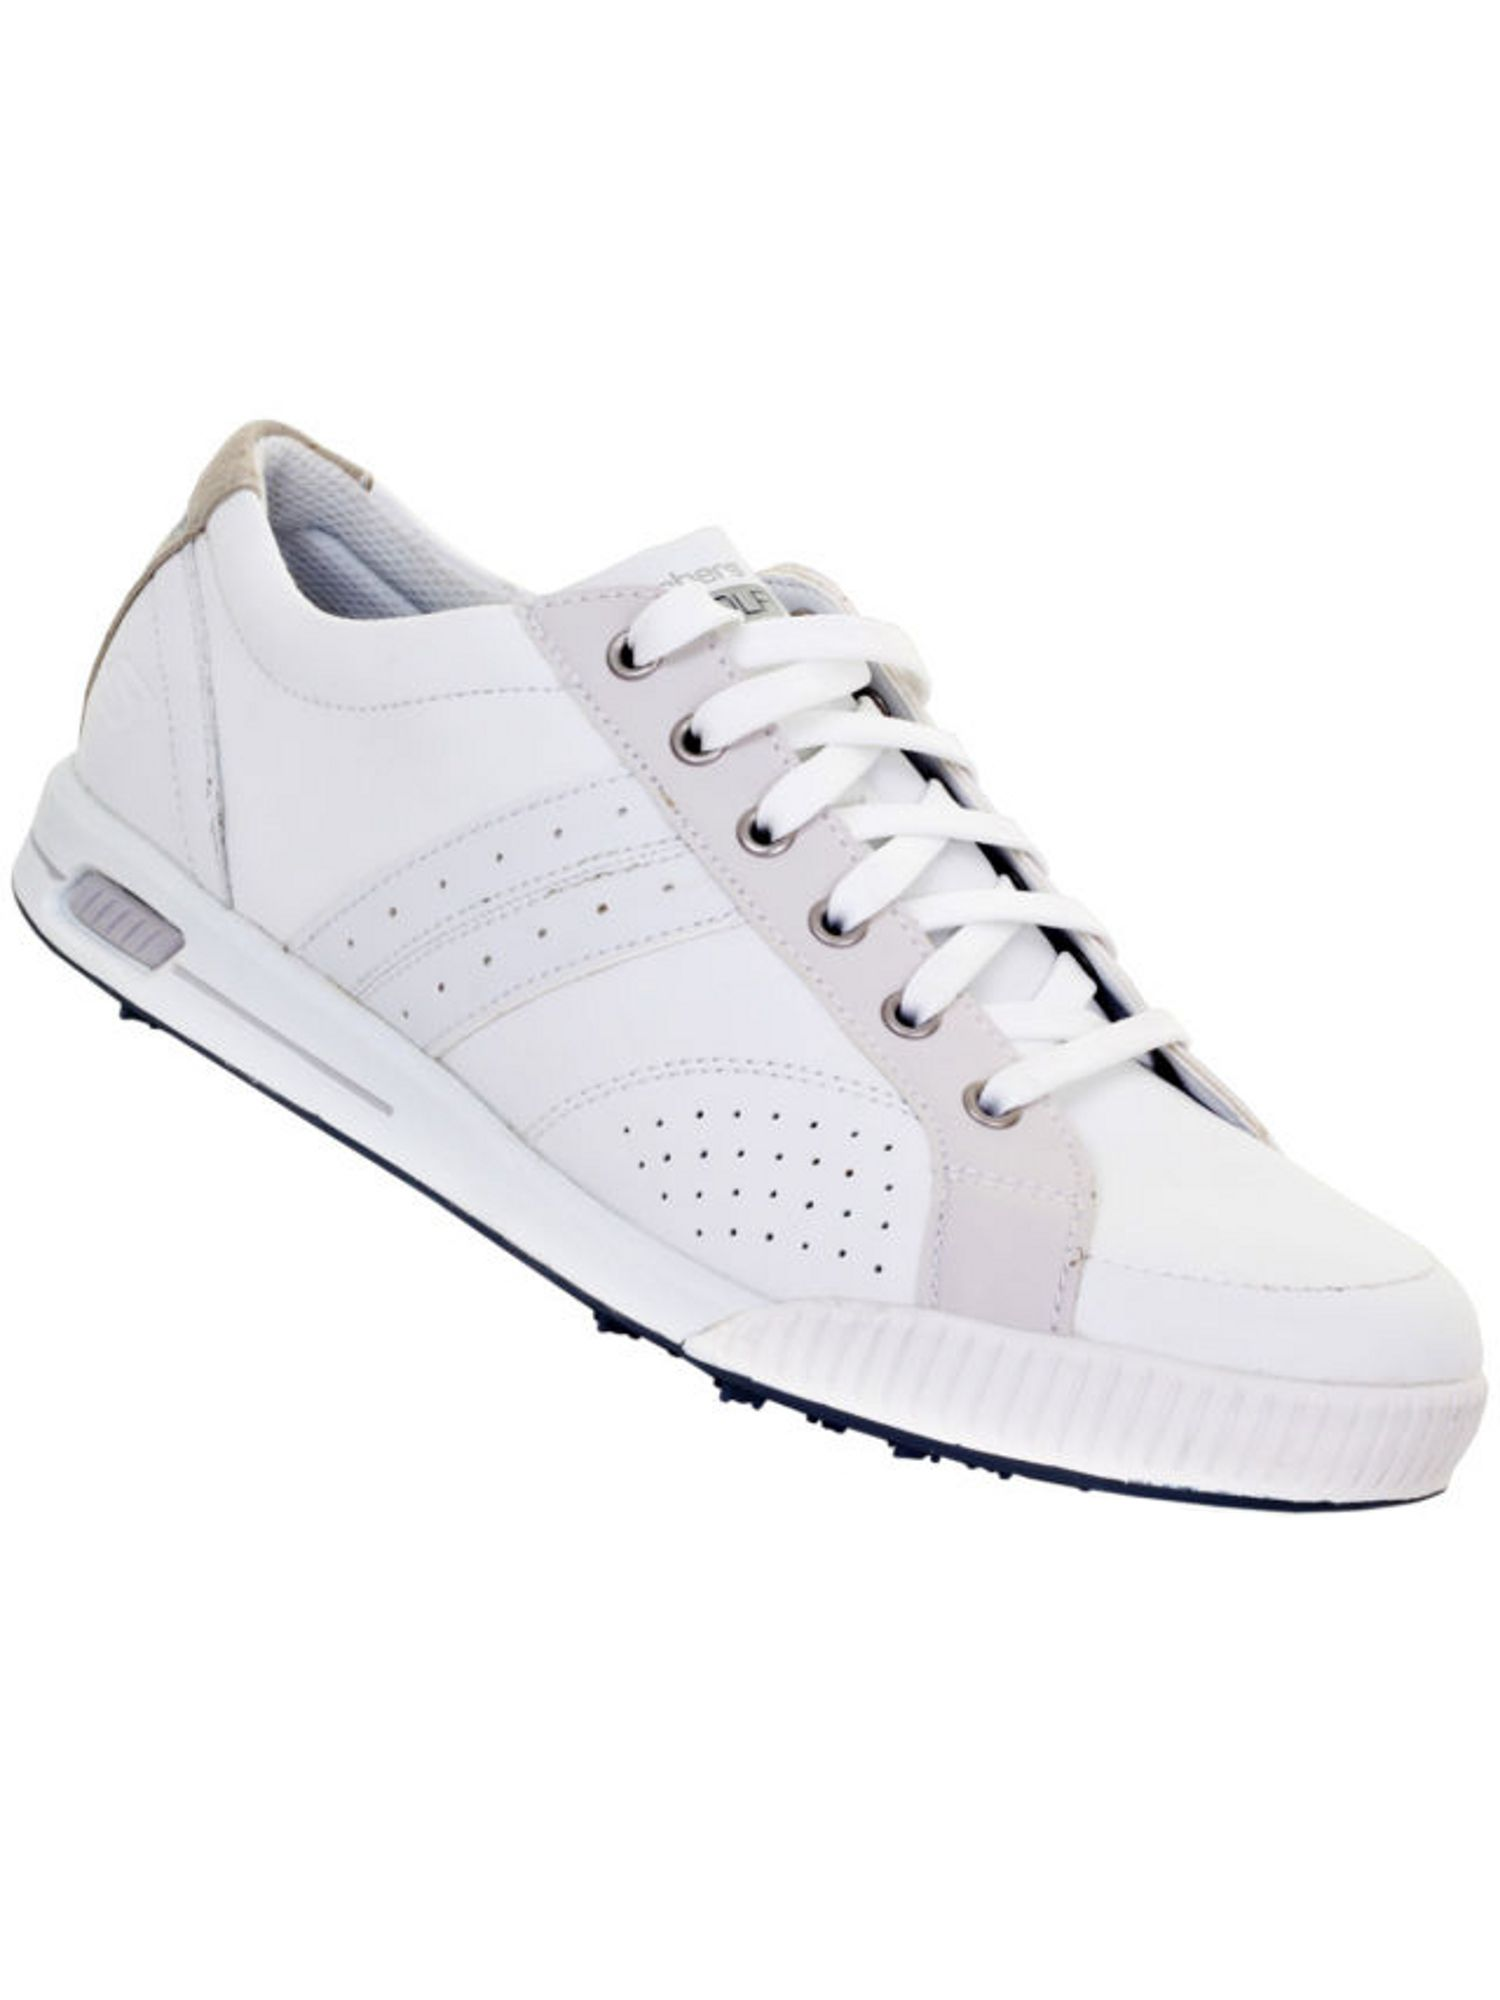 Go golf drive shoes